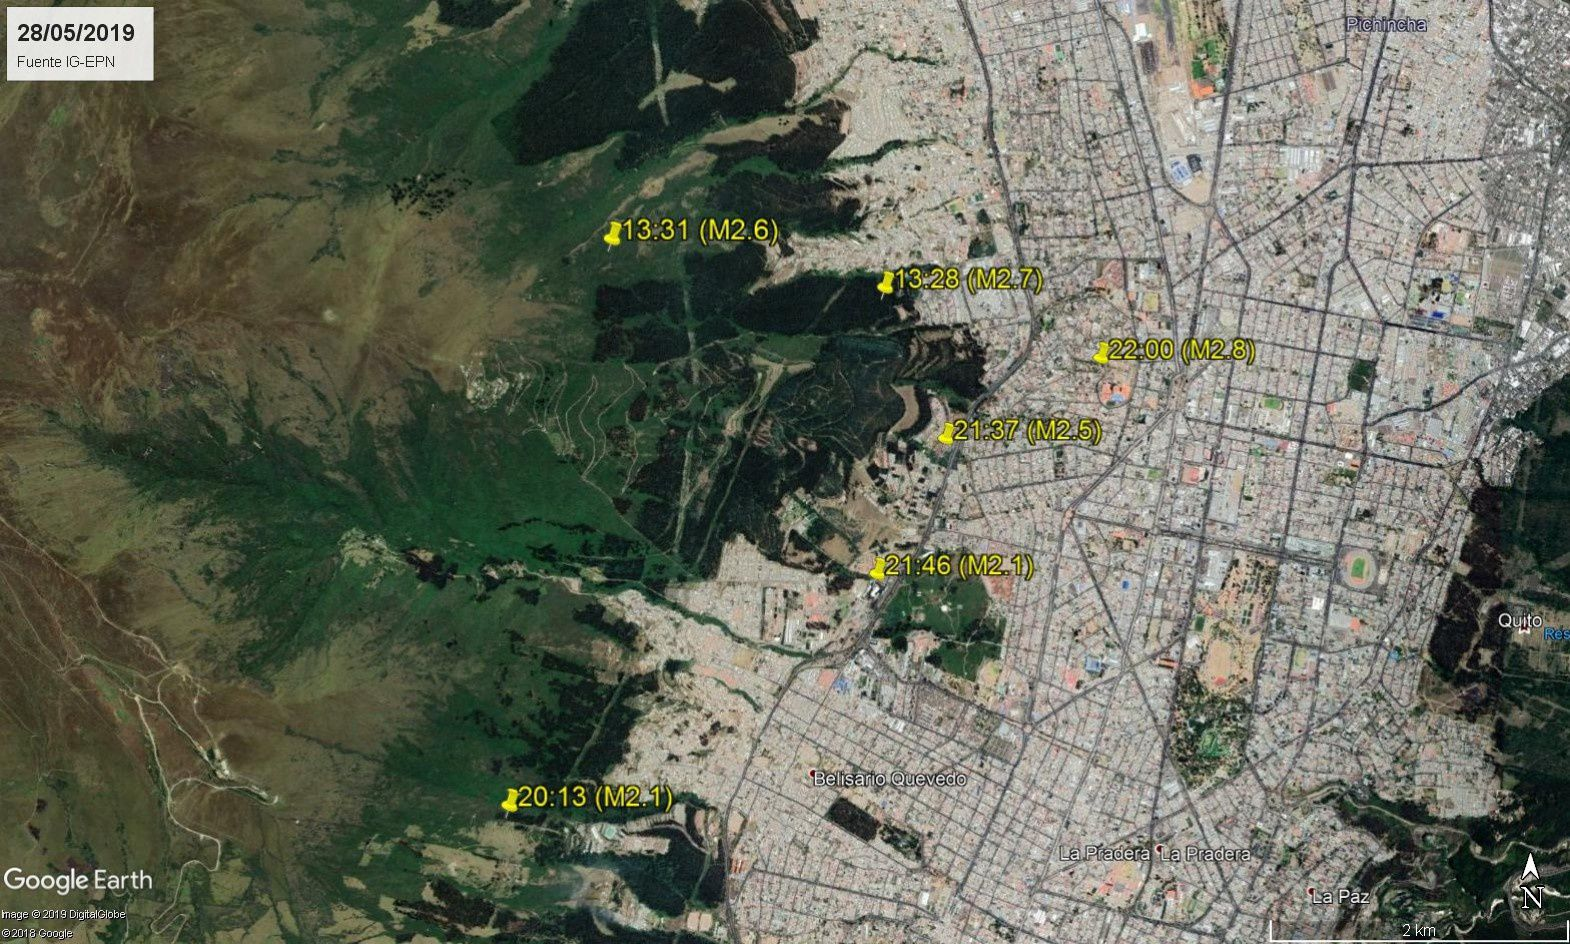 Quito - location and magnitude of the most important earthquakes recorded in the north of the city on 28.05.2019 - Doc. IGEPN